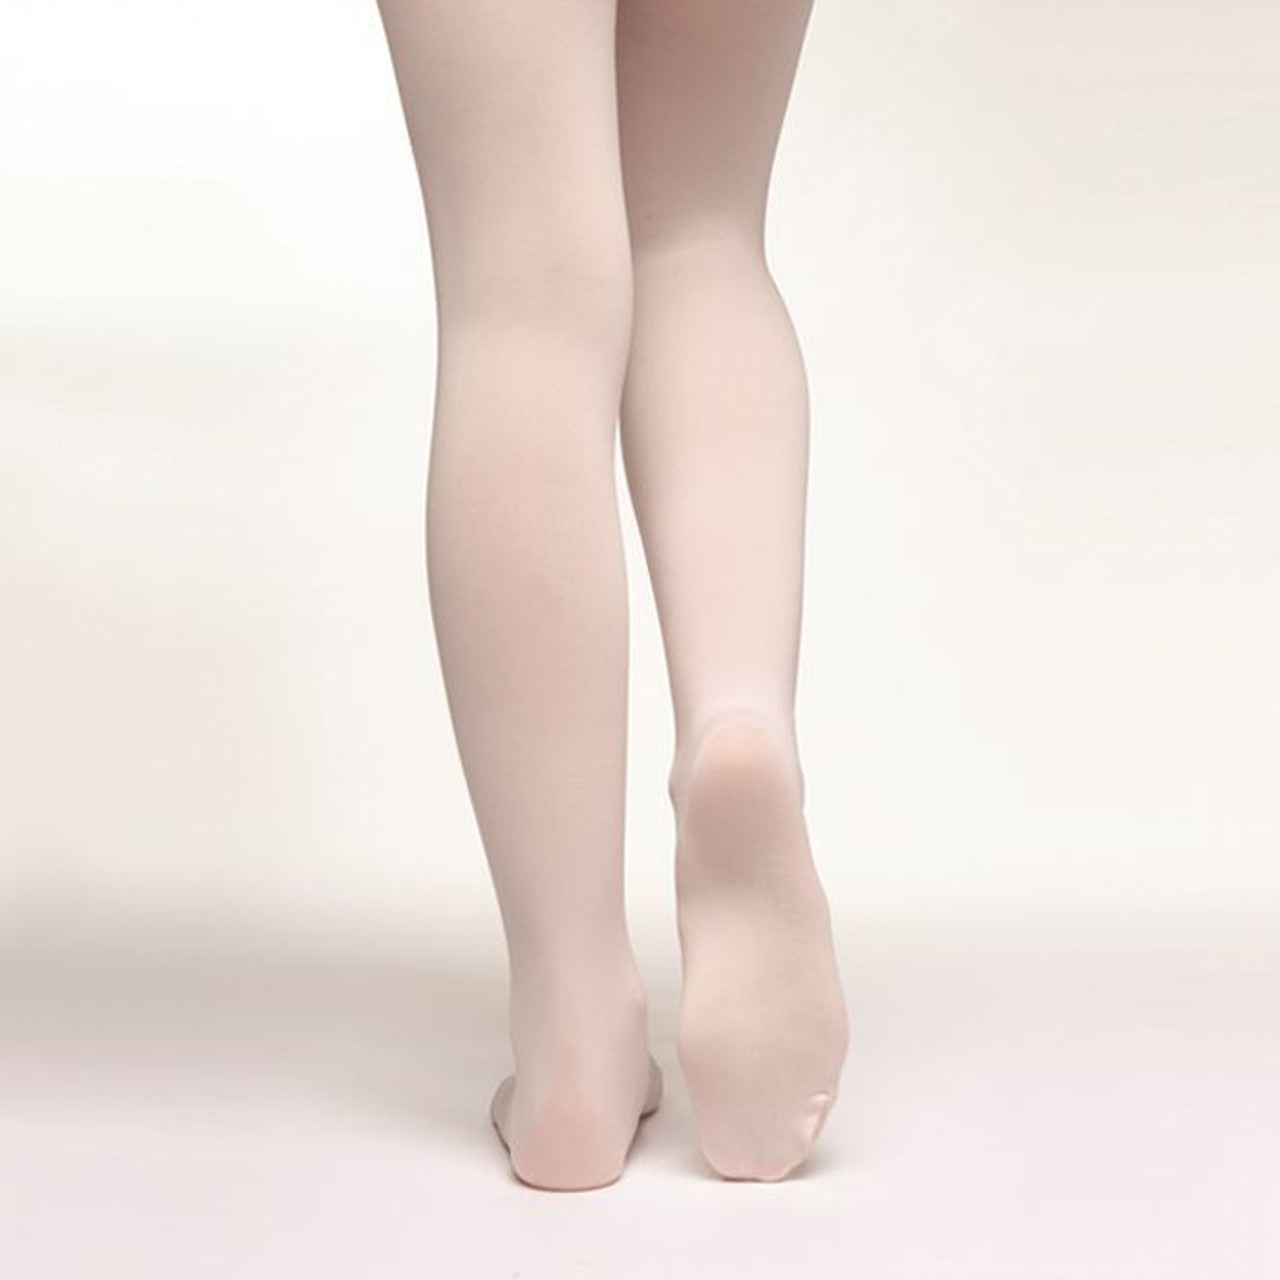 d6493b34daf43 Russian Pointe Childrens Footed Dance Tights - 4 dance